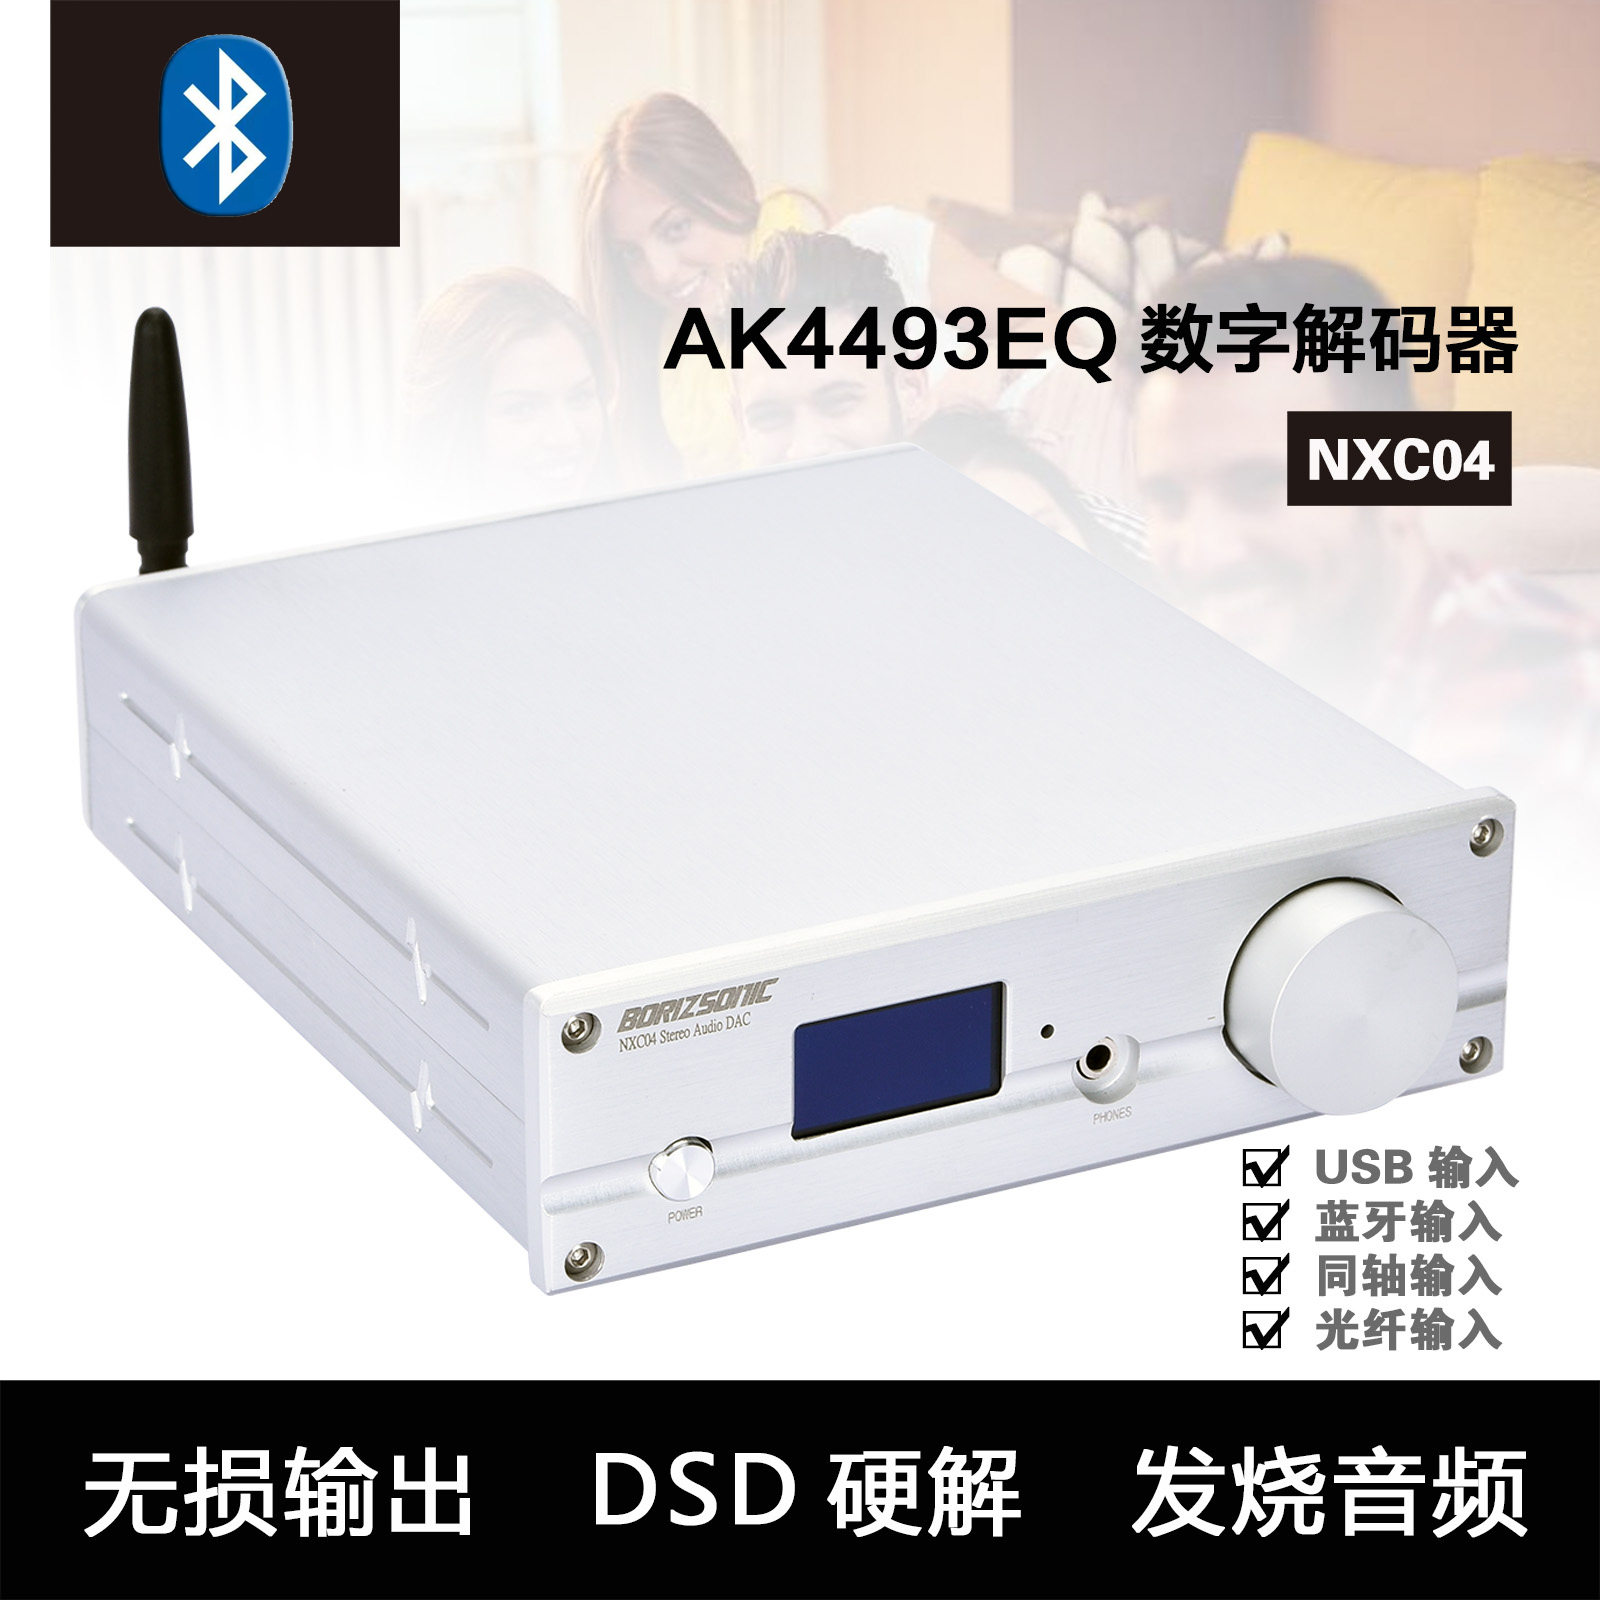 Breeze Audio 2019 New SU8 AK4493EQ Digital Audio Decoder Bluetooth 5.0 Support DSD256 DAC XMOS XU208 Headphone Audio AmplifierBreeze Audio 2019 New SU8 AK4493EQ Digital Audio Decoder Bluetooth 5.0 Support DSD256 DAC XMOS XU208 Headphone Audio Amplifier